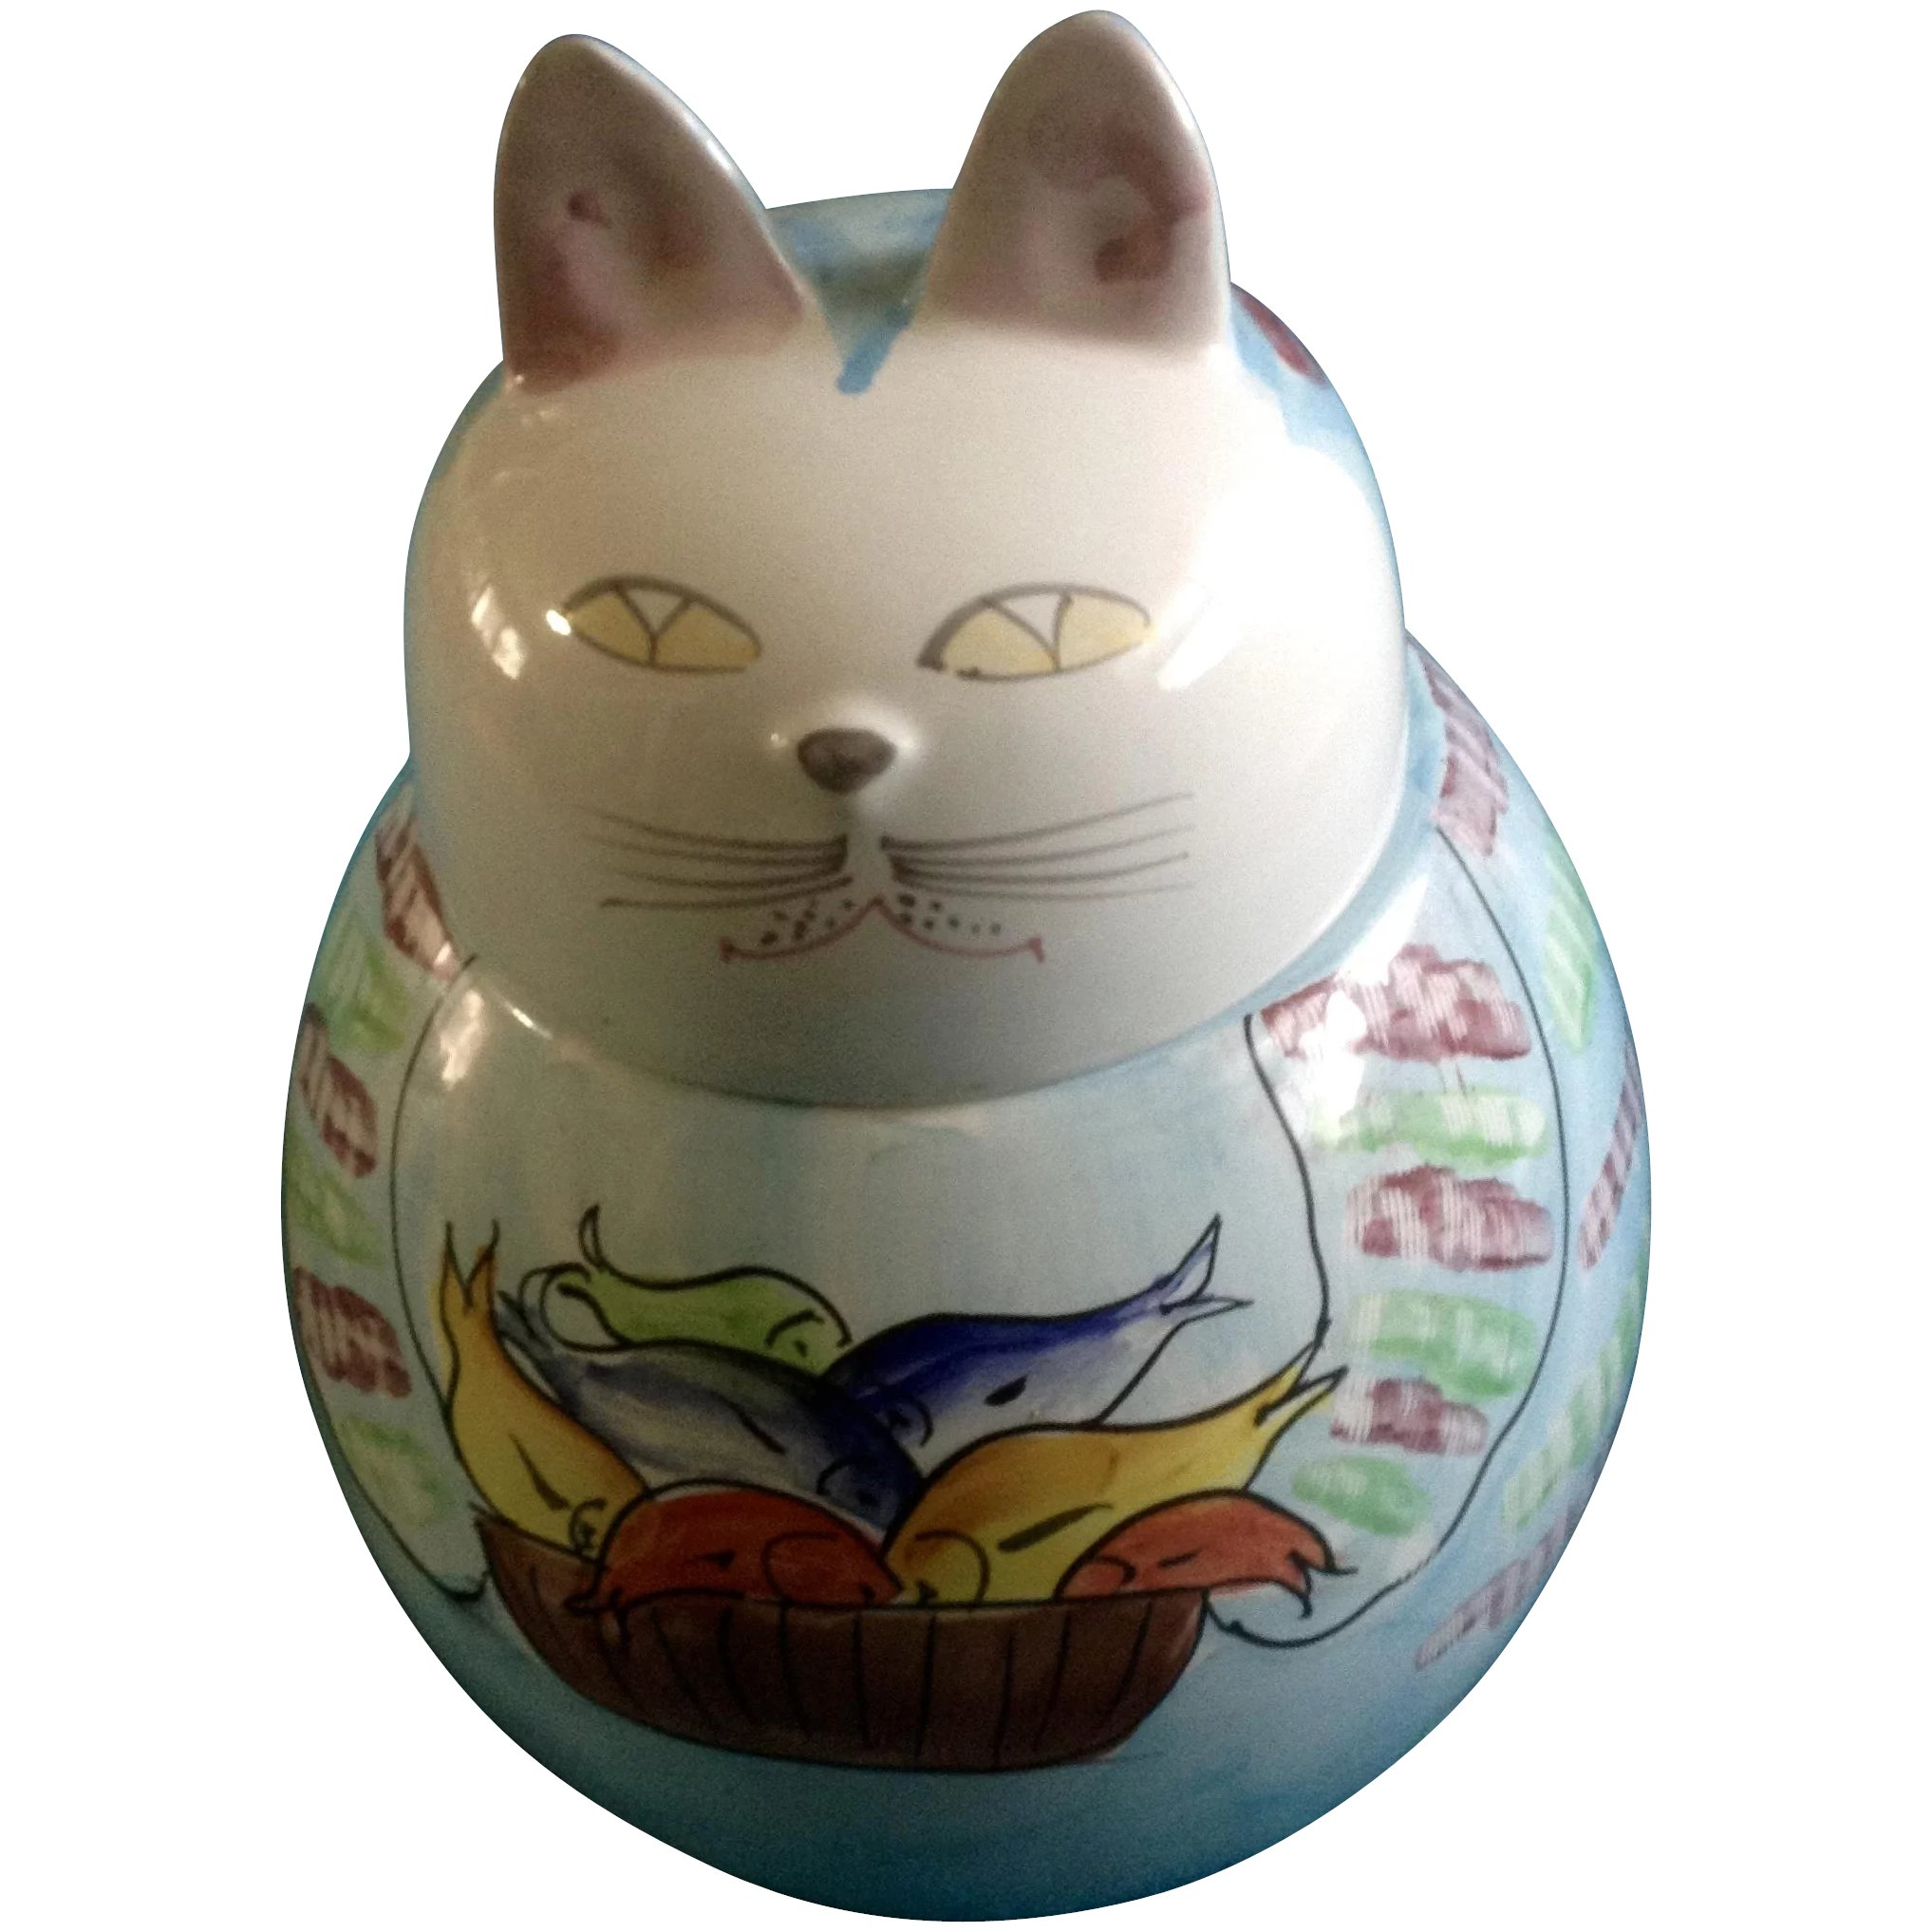 Cat Cookie Treat Jar Italy Signed By Artist Italian Pottery Gumgumfuninthesun Ruby Lane